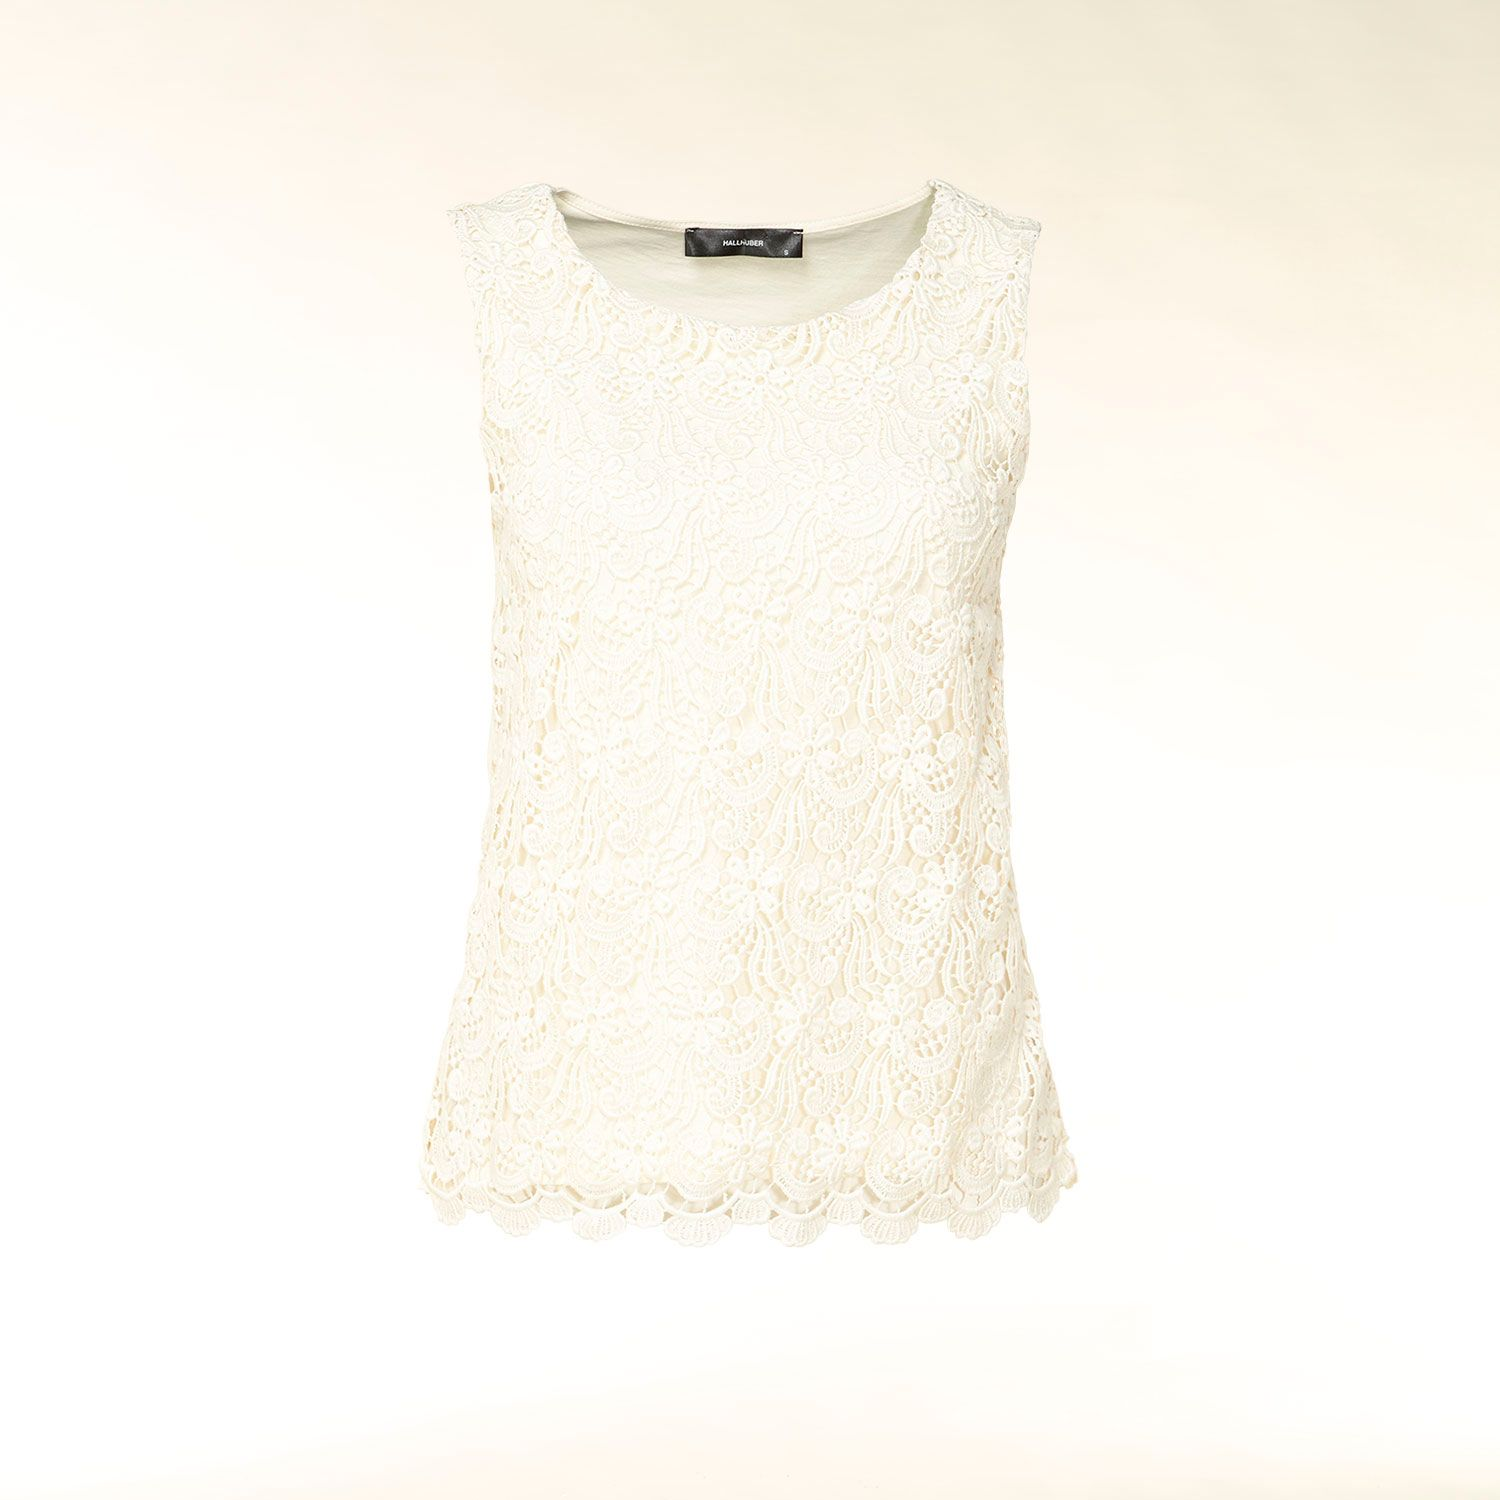 Sleeveless lace overlay top